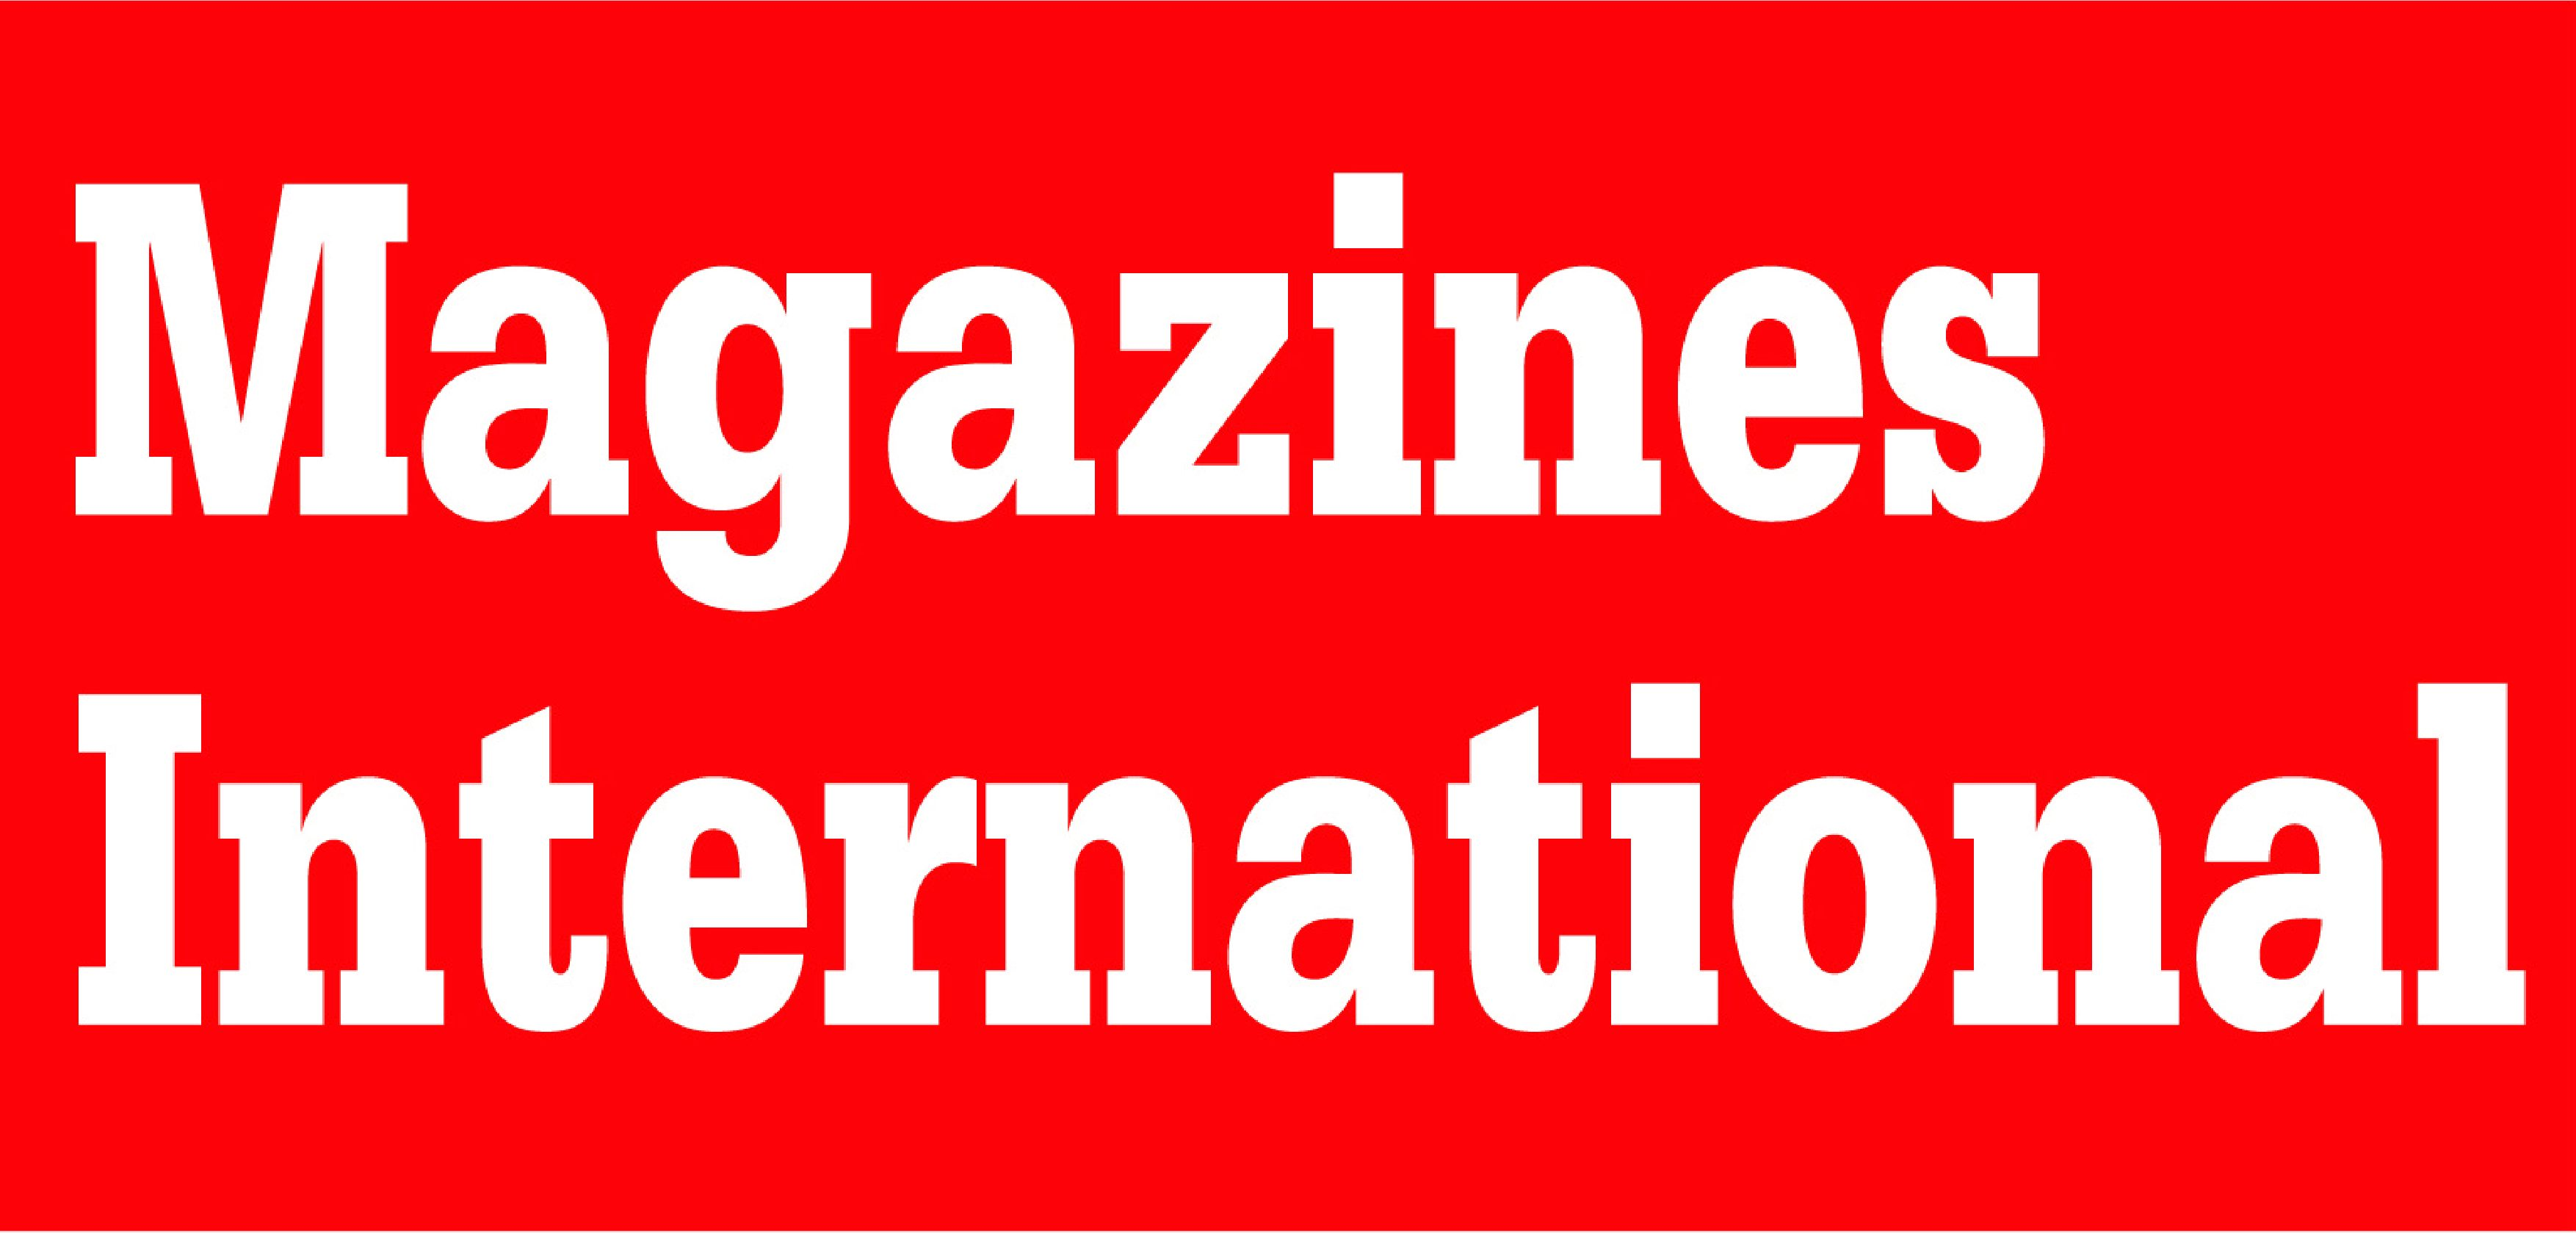 Magazines International - The Best Magazines Subscription Platform